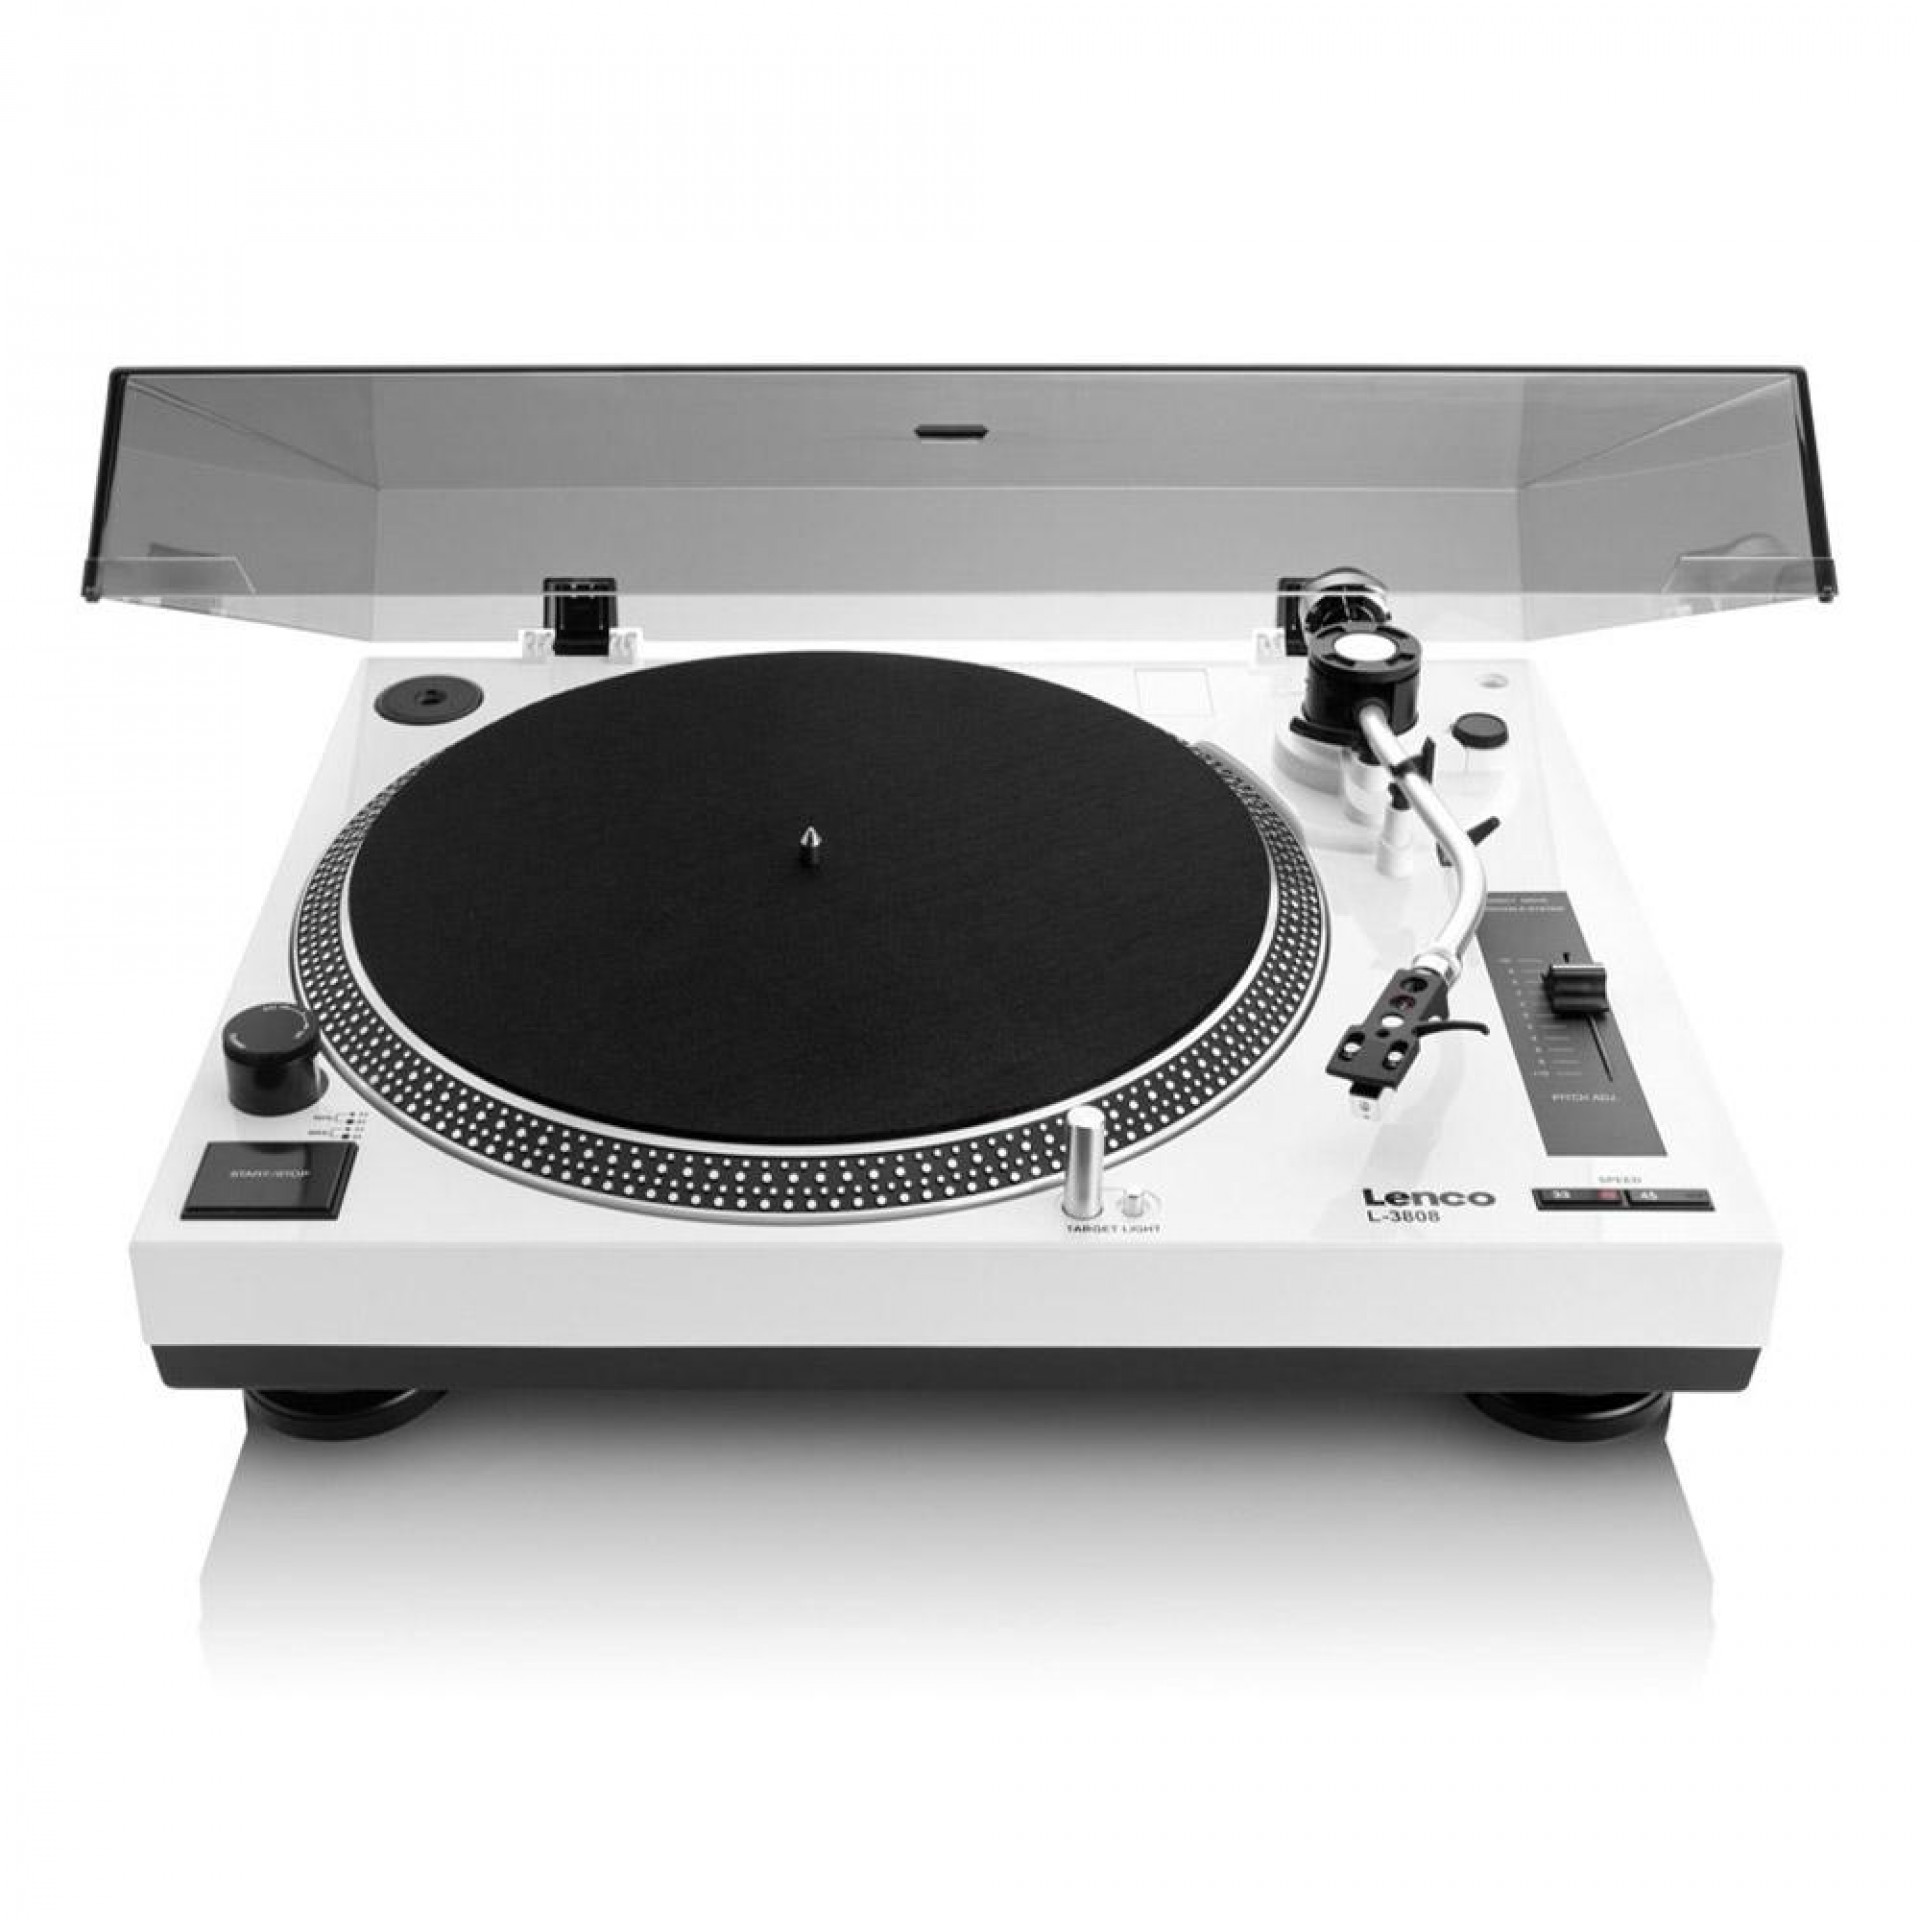 Lenco L-3808 - Direct drive turntable White